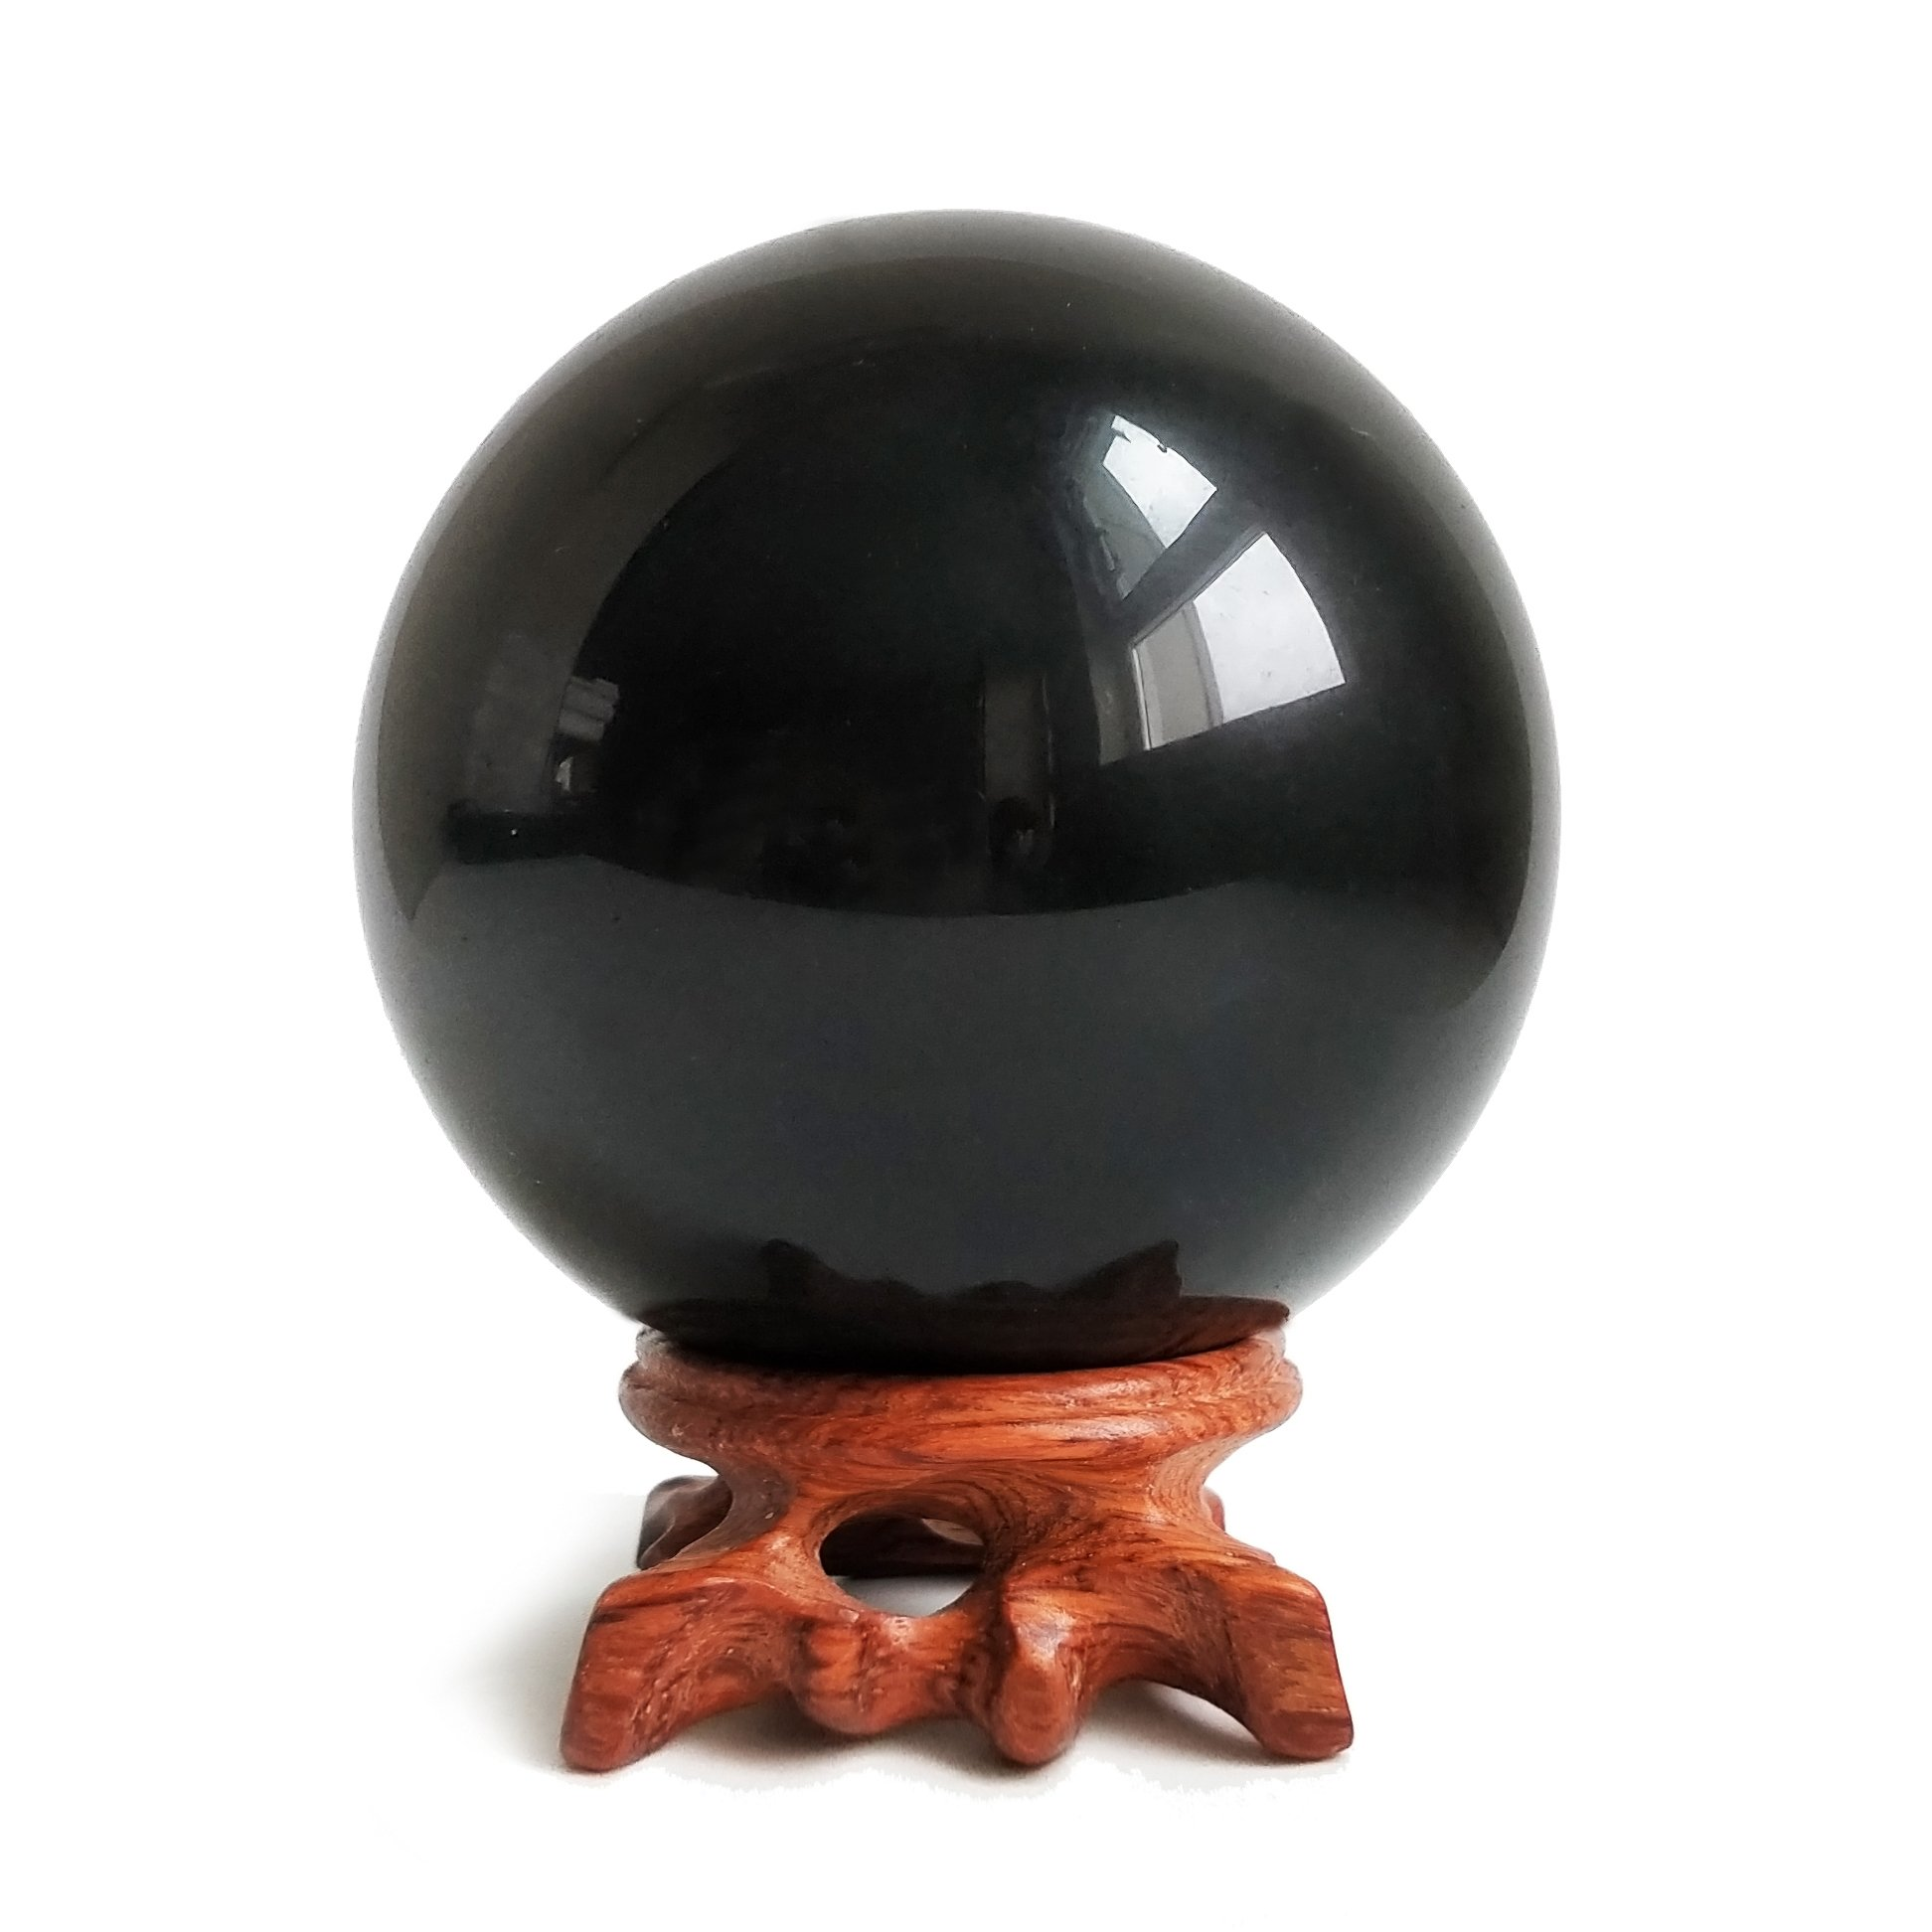 Mina Heal Obsidian Crystal Ball for Fengshui Ball, Meditation, Crystal Healing, Divination Sphere, Home Decoration, 100% Natural and Genuine (100 mm) by Mina Heal